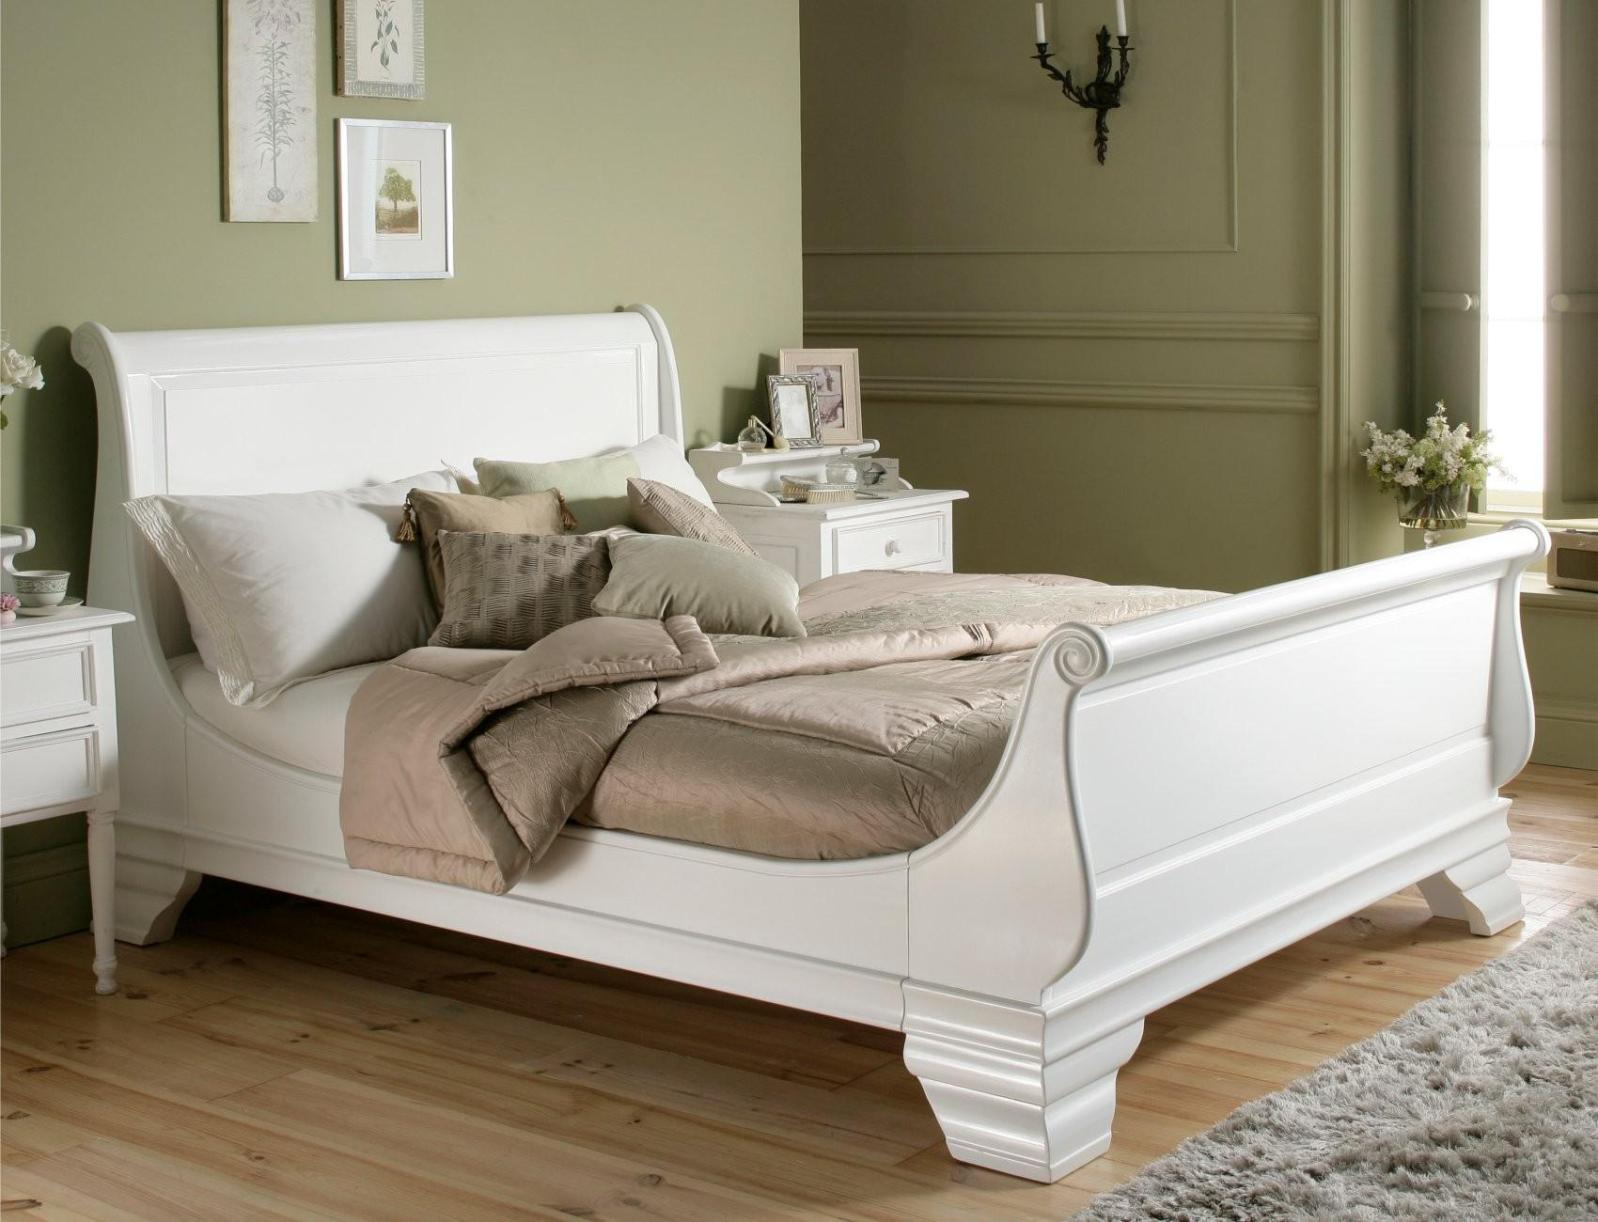 Image of: Wood Sleigh Bed Frame